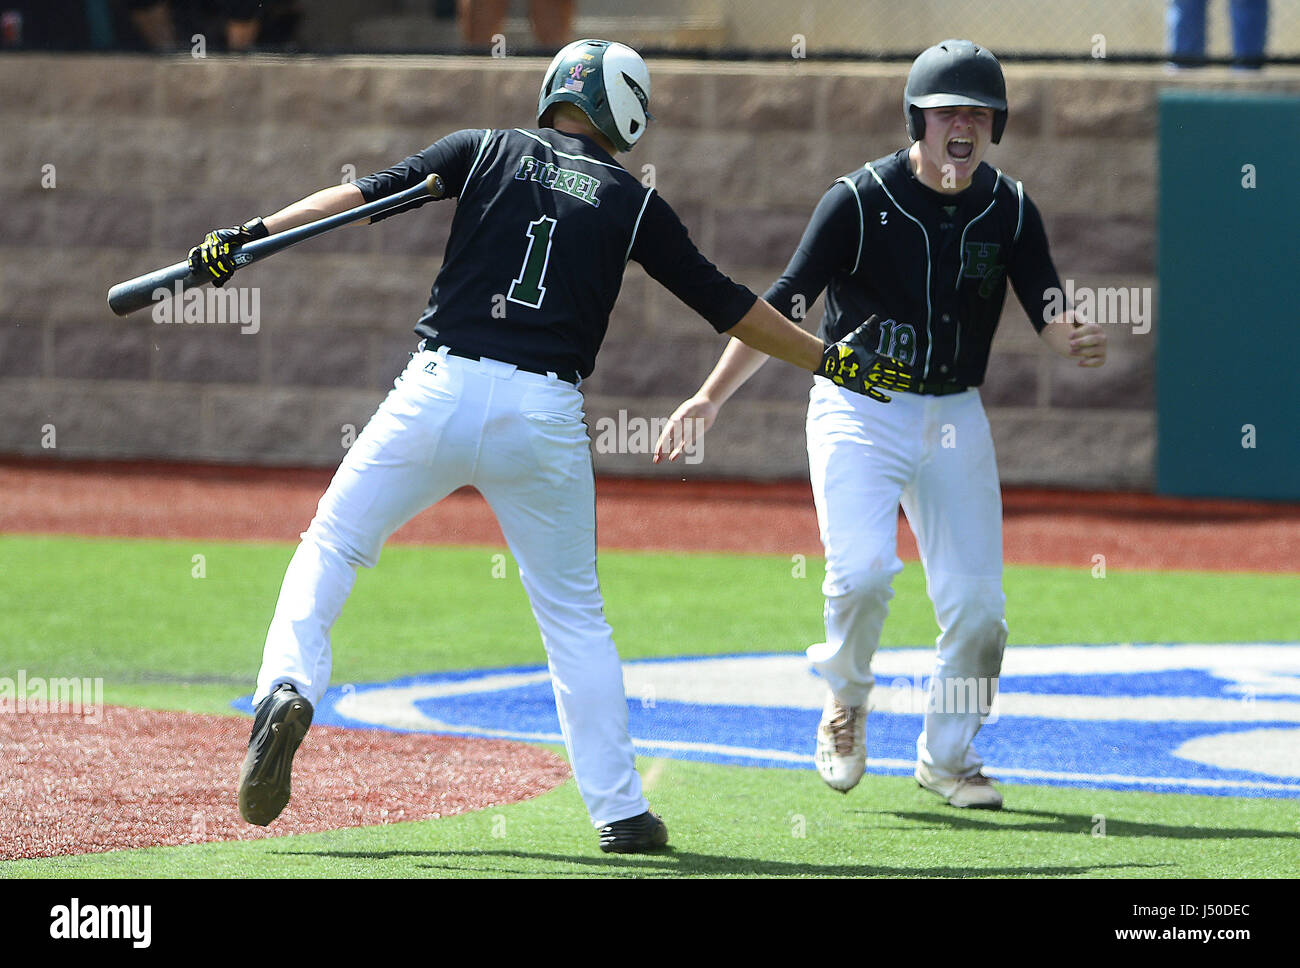 Albuquerque, NEW MEXICO, USA. 11th May, 2017. JOURNAL 051117.Hope Christian Huskies Tyler Fickel, left and teammate - Stock Image